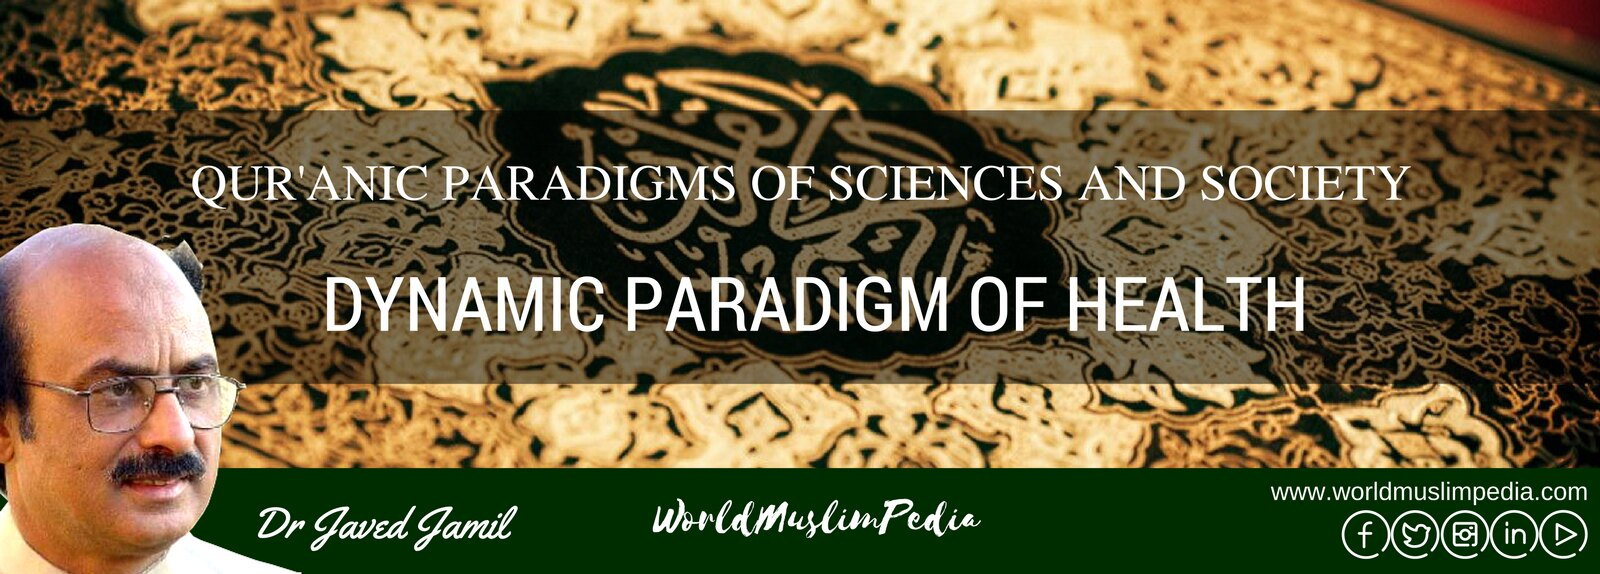 QUR'ANIC PARADIGMS OF SCIENCES AND SOCIETY